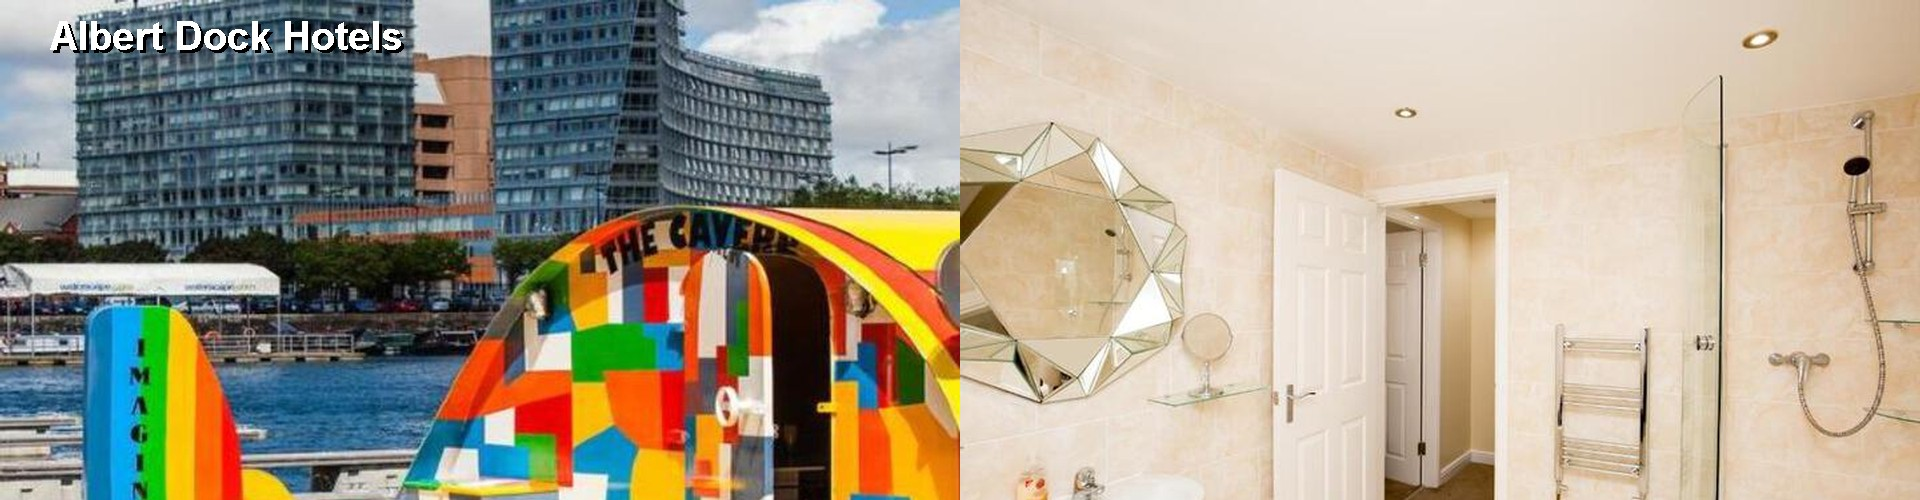 5 Best Hotels Near Albert Dock